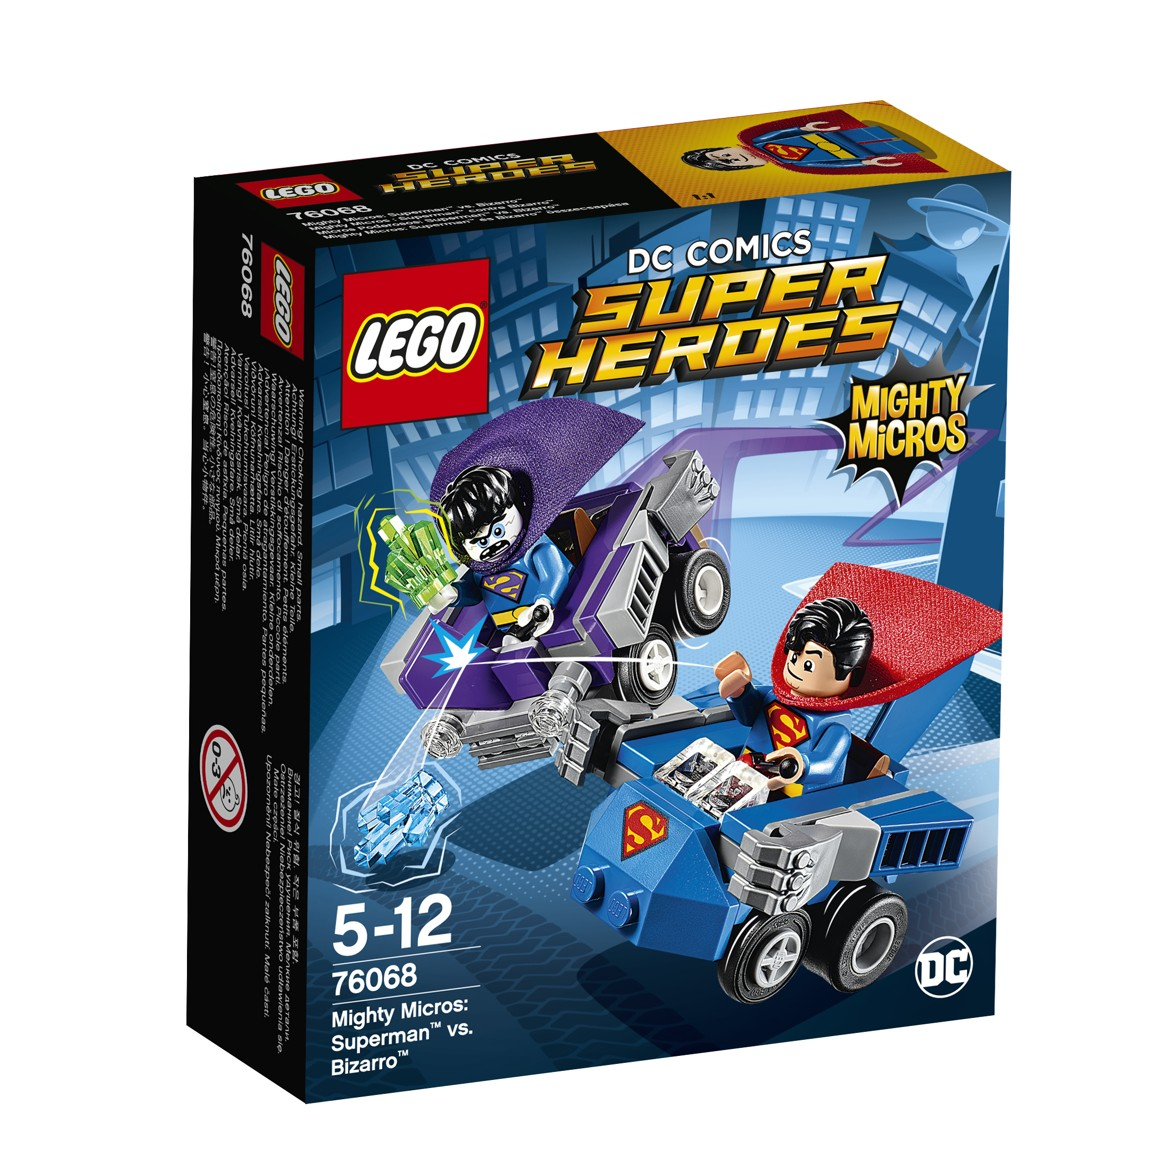 LEGO® DC Comics Super Heroes 76068 Mighty Micros: Superman™ vs. Bizarro™